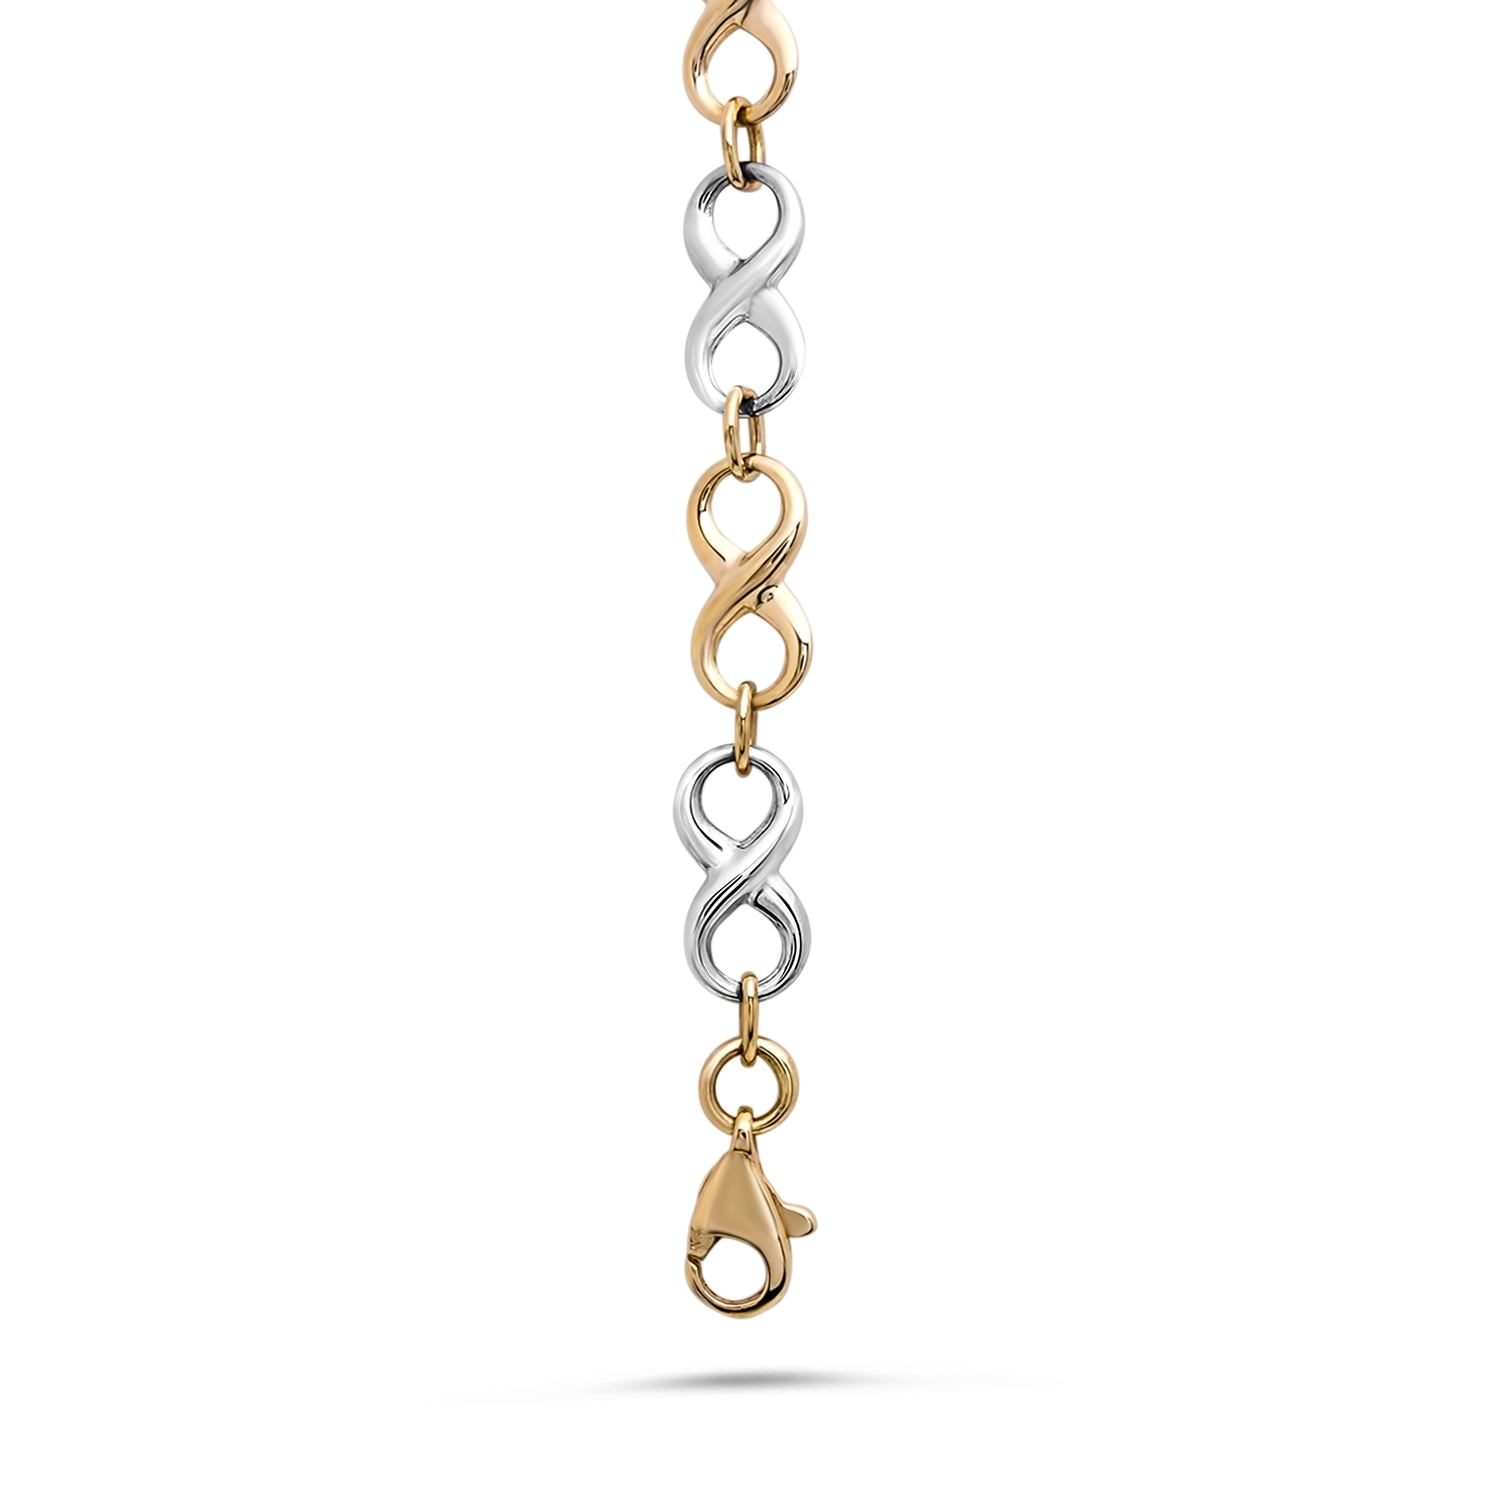 14k Gold Two-Tone Polished Bracelet